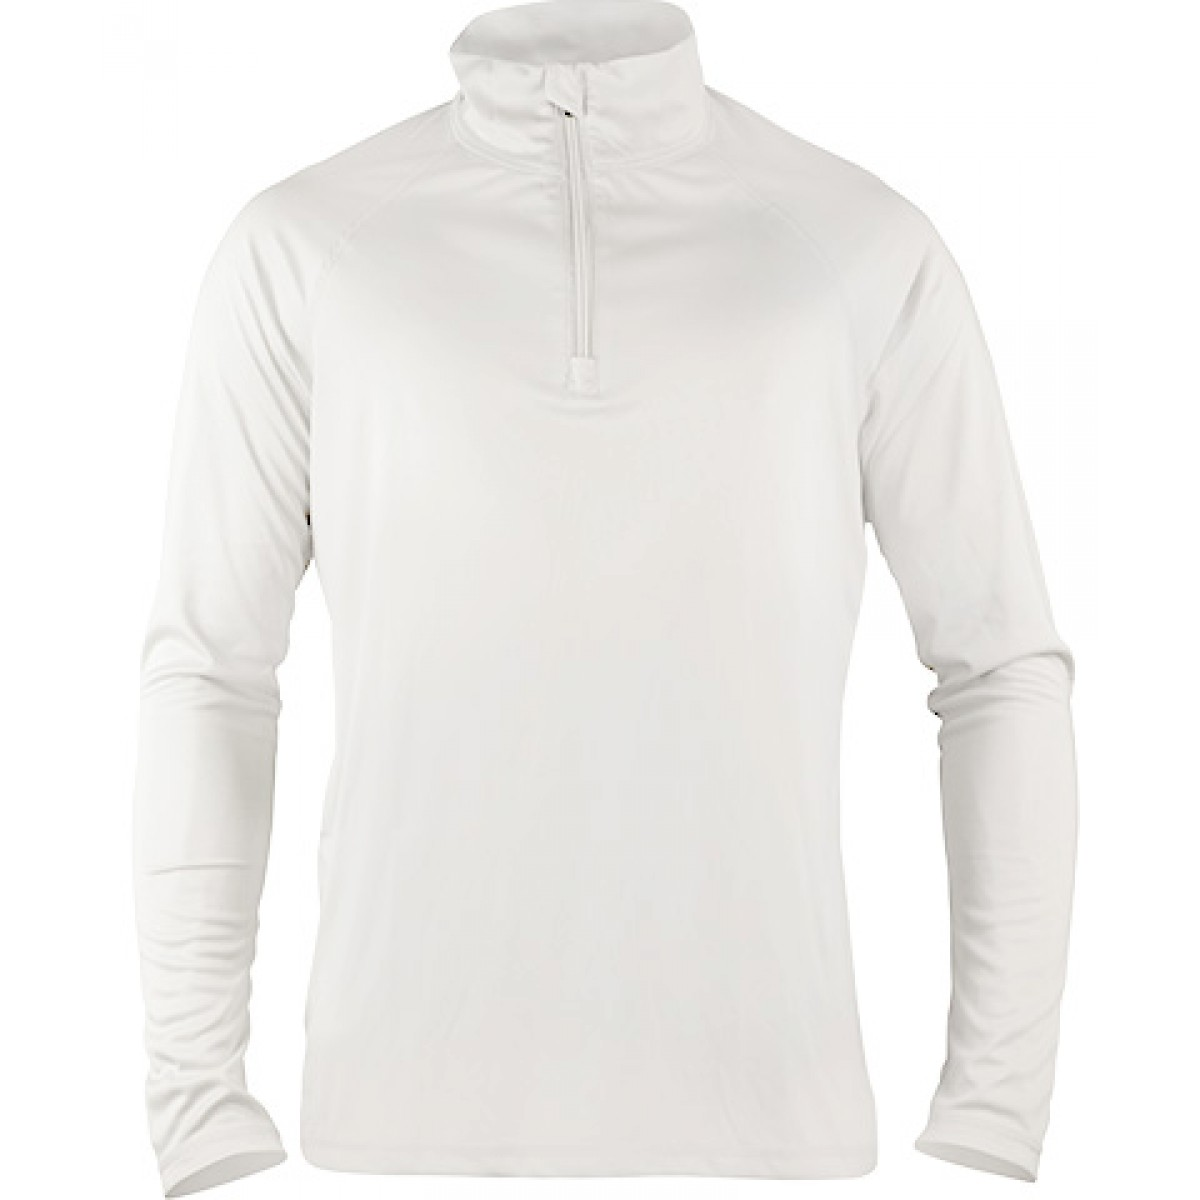 Quarter-Zip Lightweight Pullover-White-YL